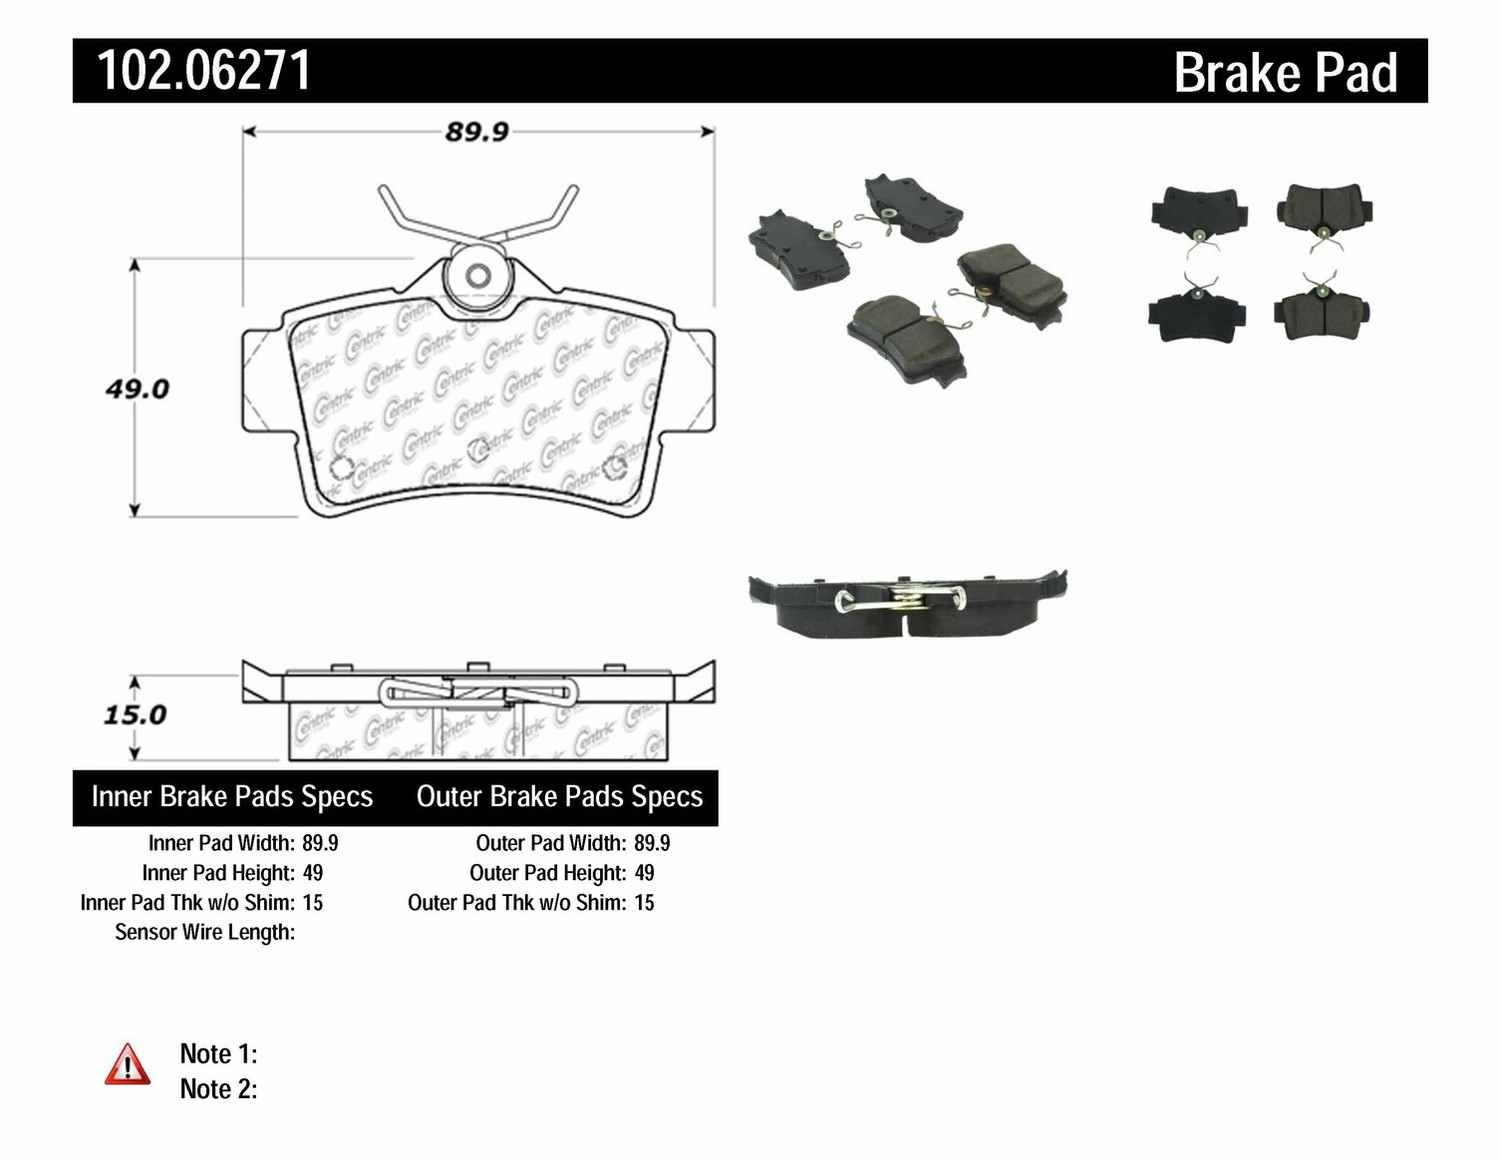 C-TEK BY CENTRIC - C-TEK Metallic Brake Pads (Rear) - CTK 102.06271